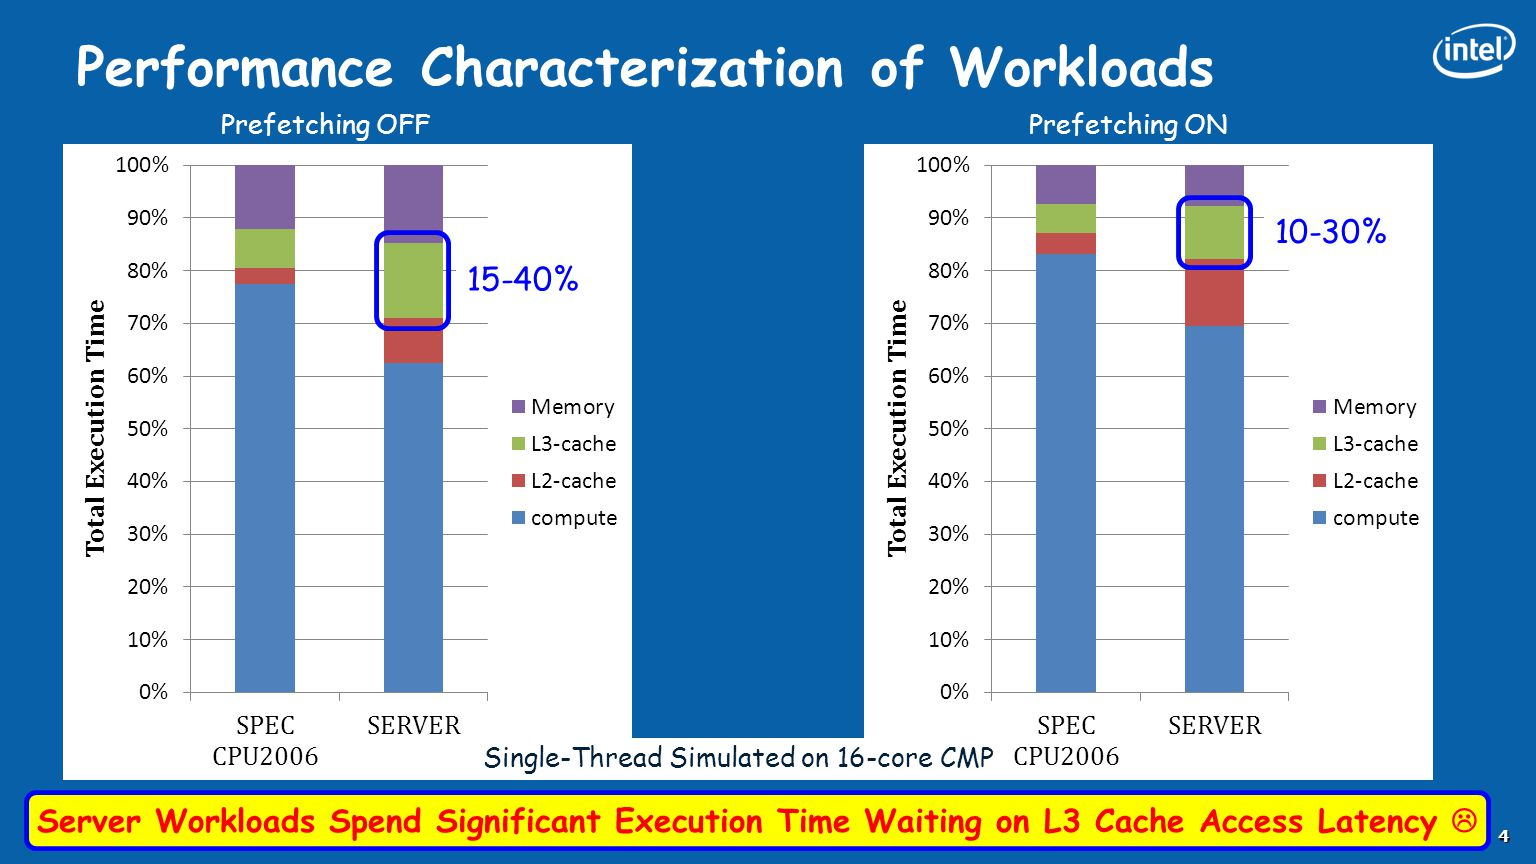 Performance Characterization of Workloads